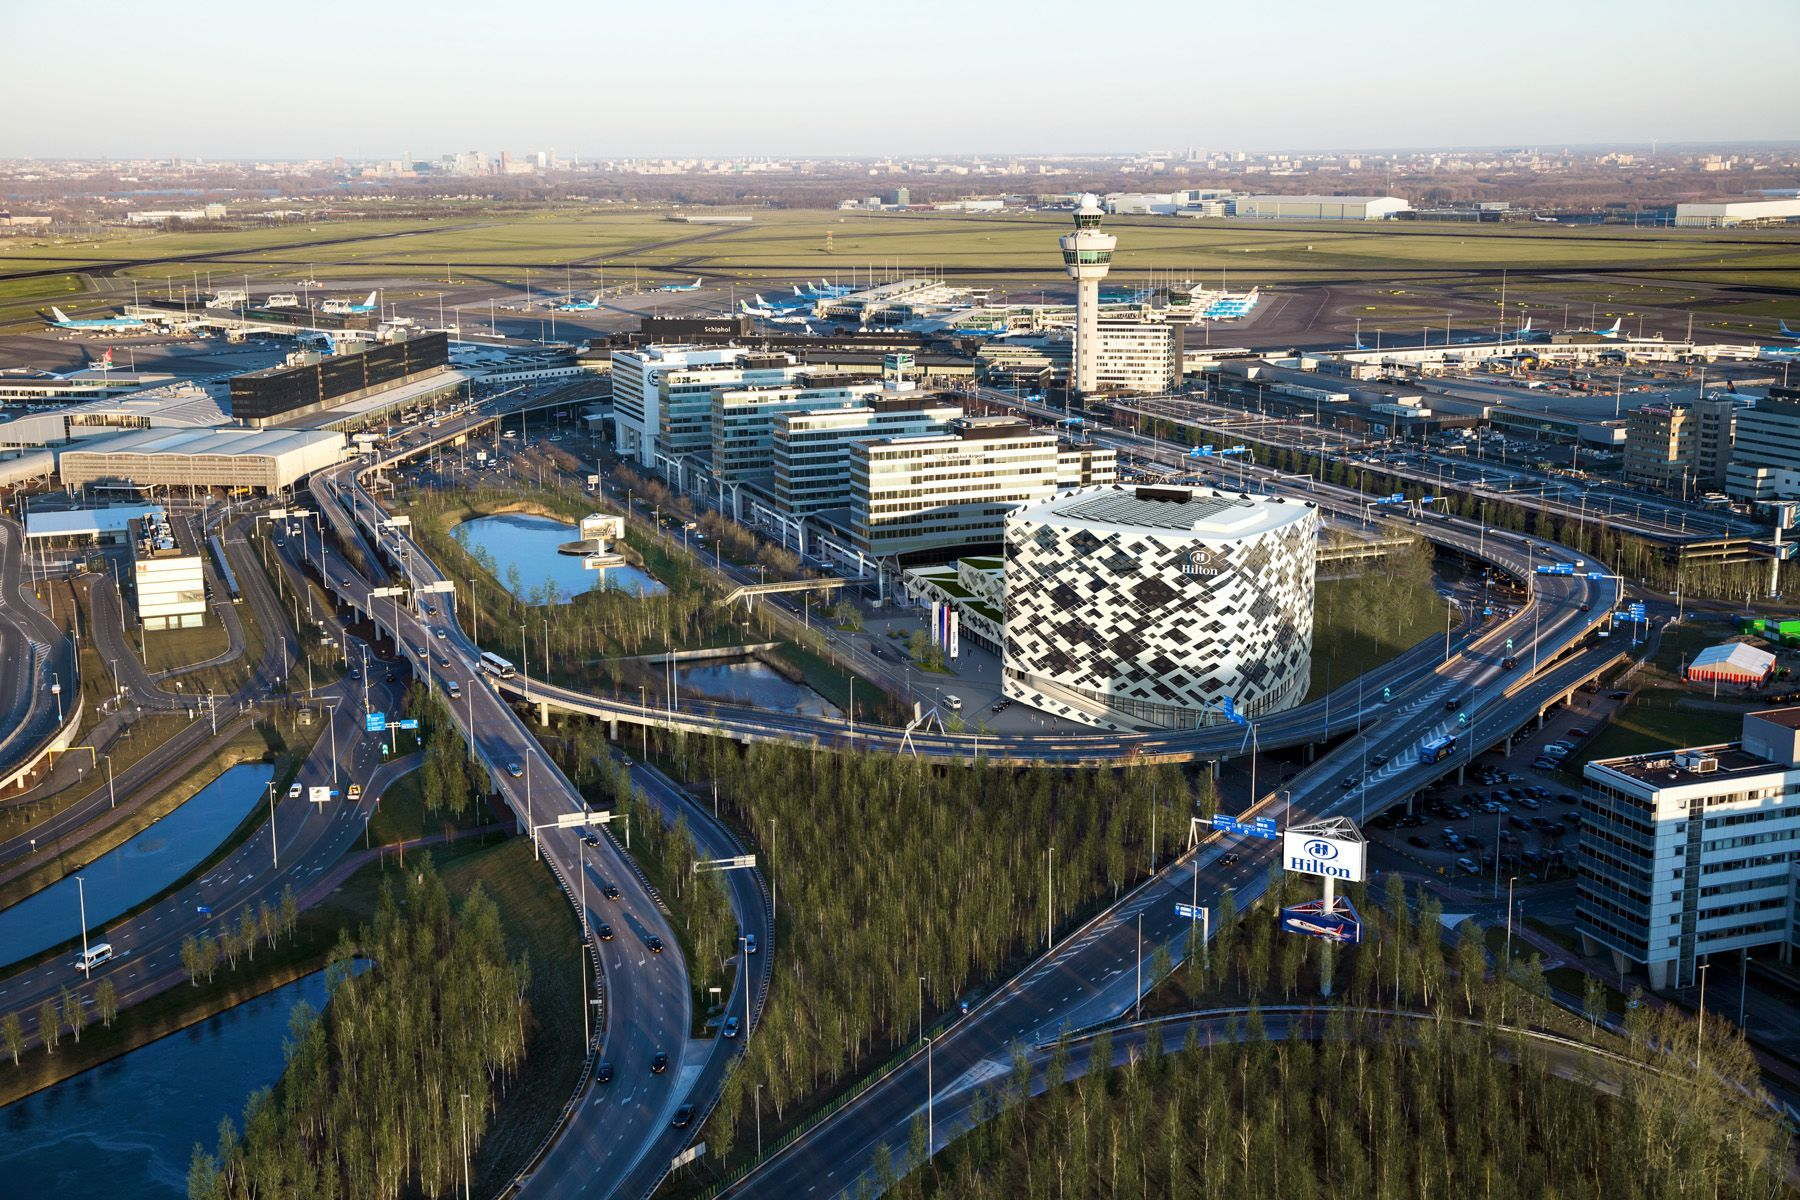 Airport Hotel Schiphol Amsterdam